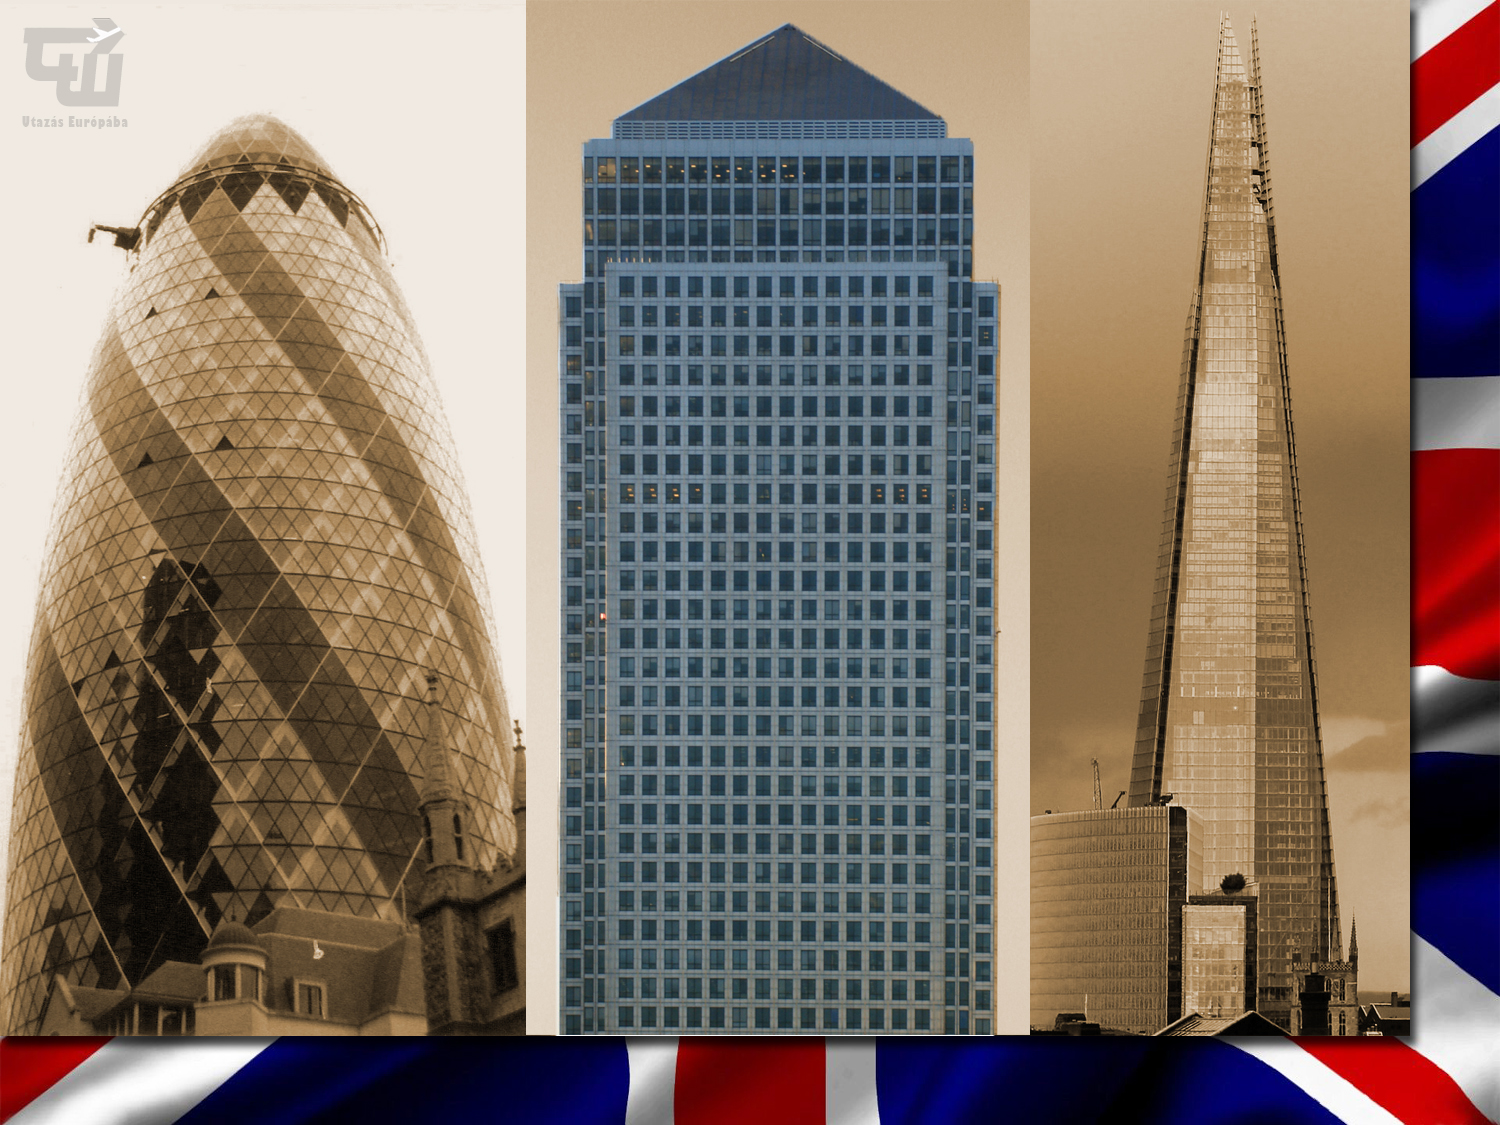 07_az_uborka_the_gherkin_one_canada_square_uvegszilank_the_shard_london_nagy-britannia_anglia_great_britain_england_utazas_europaba.jpg